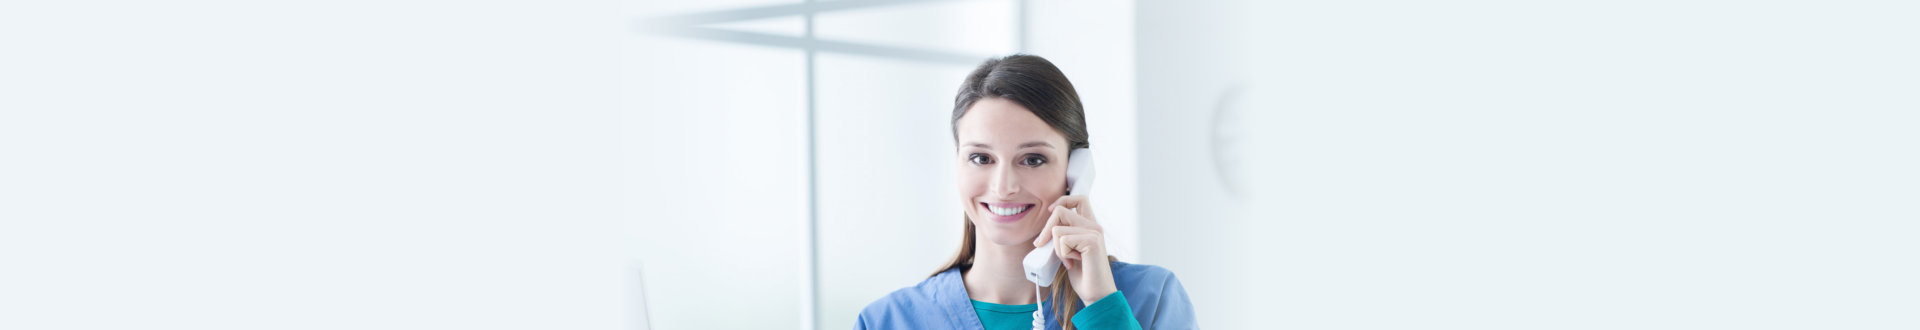 female caregiver on the phone